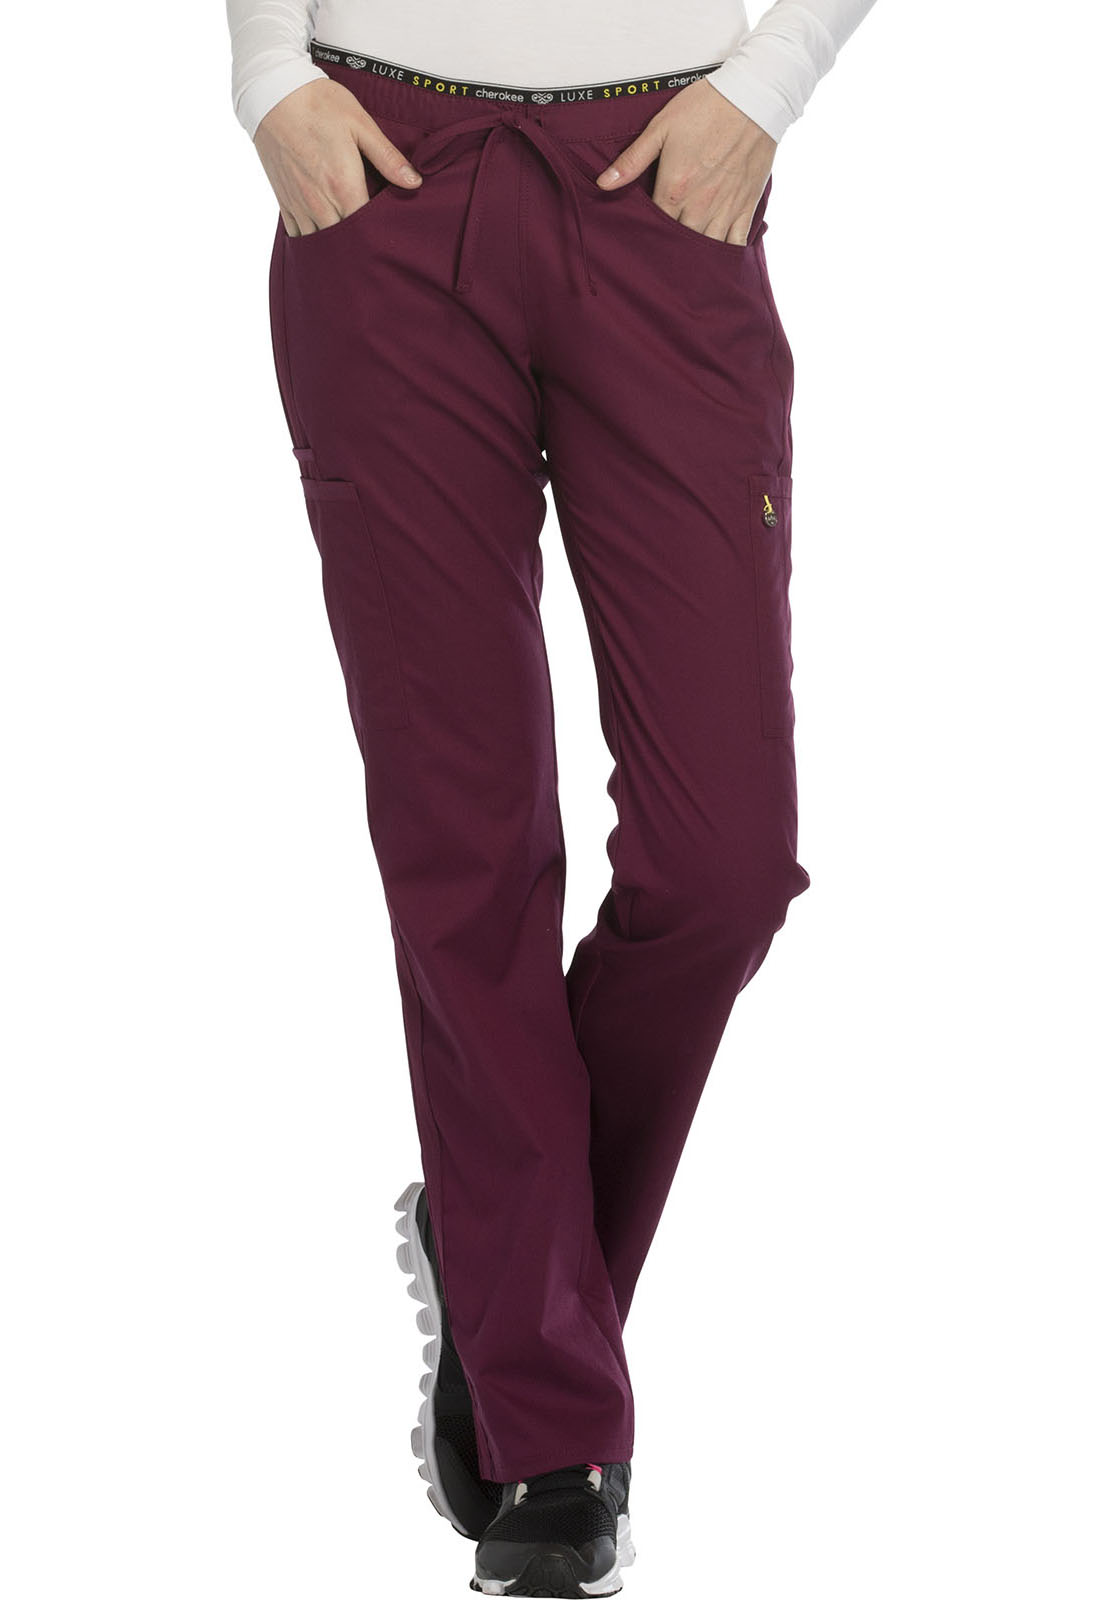 f4ced356d1e Luxe Sport Mid Rise Straight Leg Pull-on Pant in Wine CK003P-WINV ...